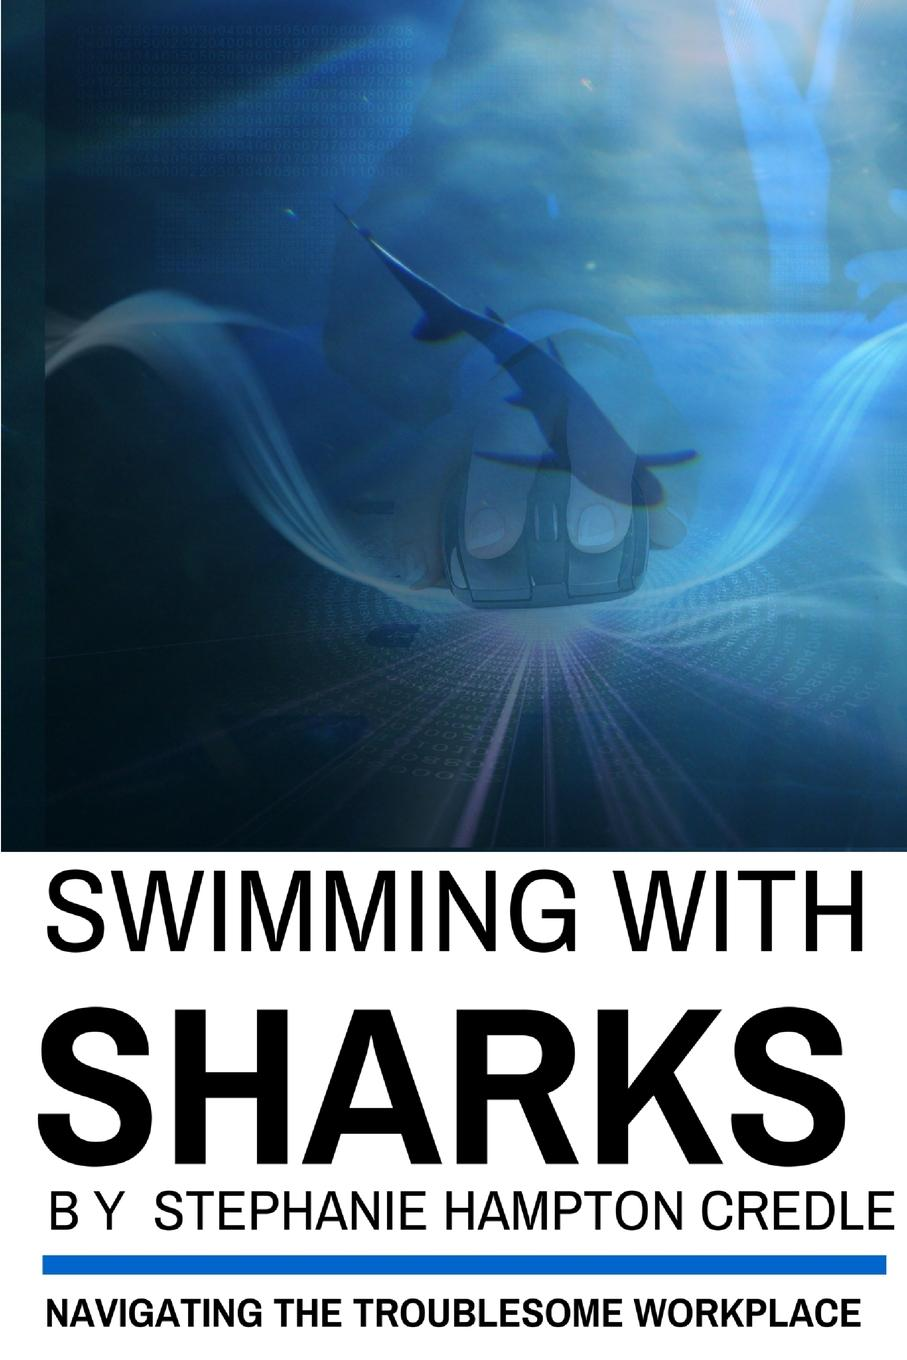 Dr. Stephanie Hampton Credle Swimming With Sharks. Navigating The Troublesome Workplace